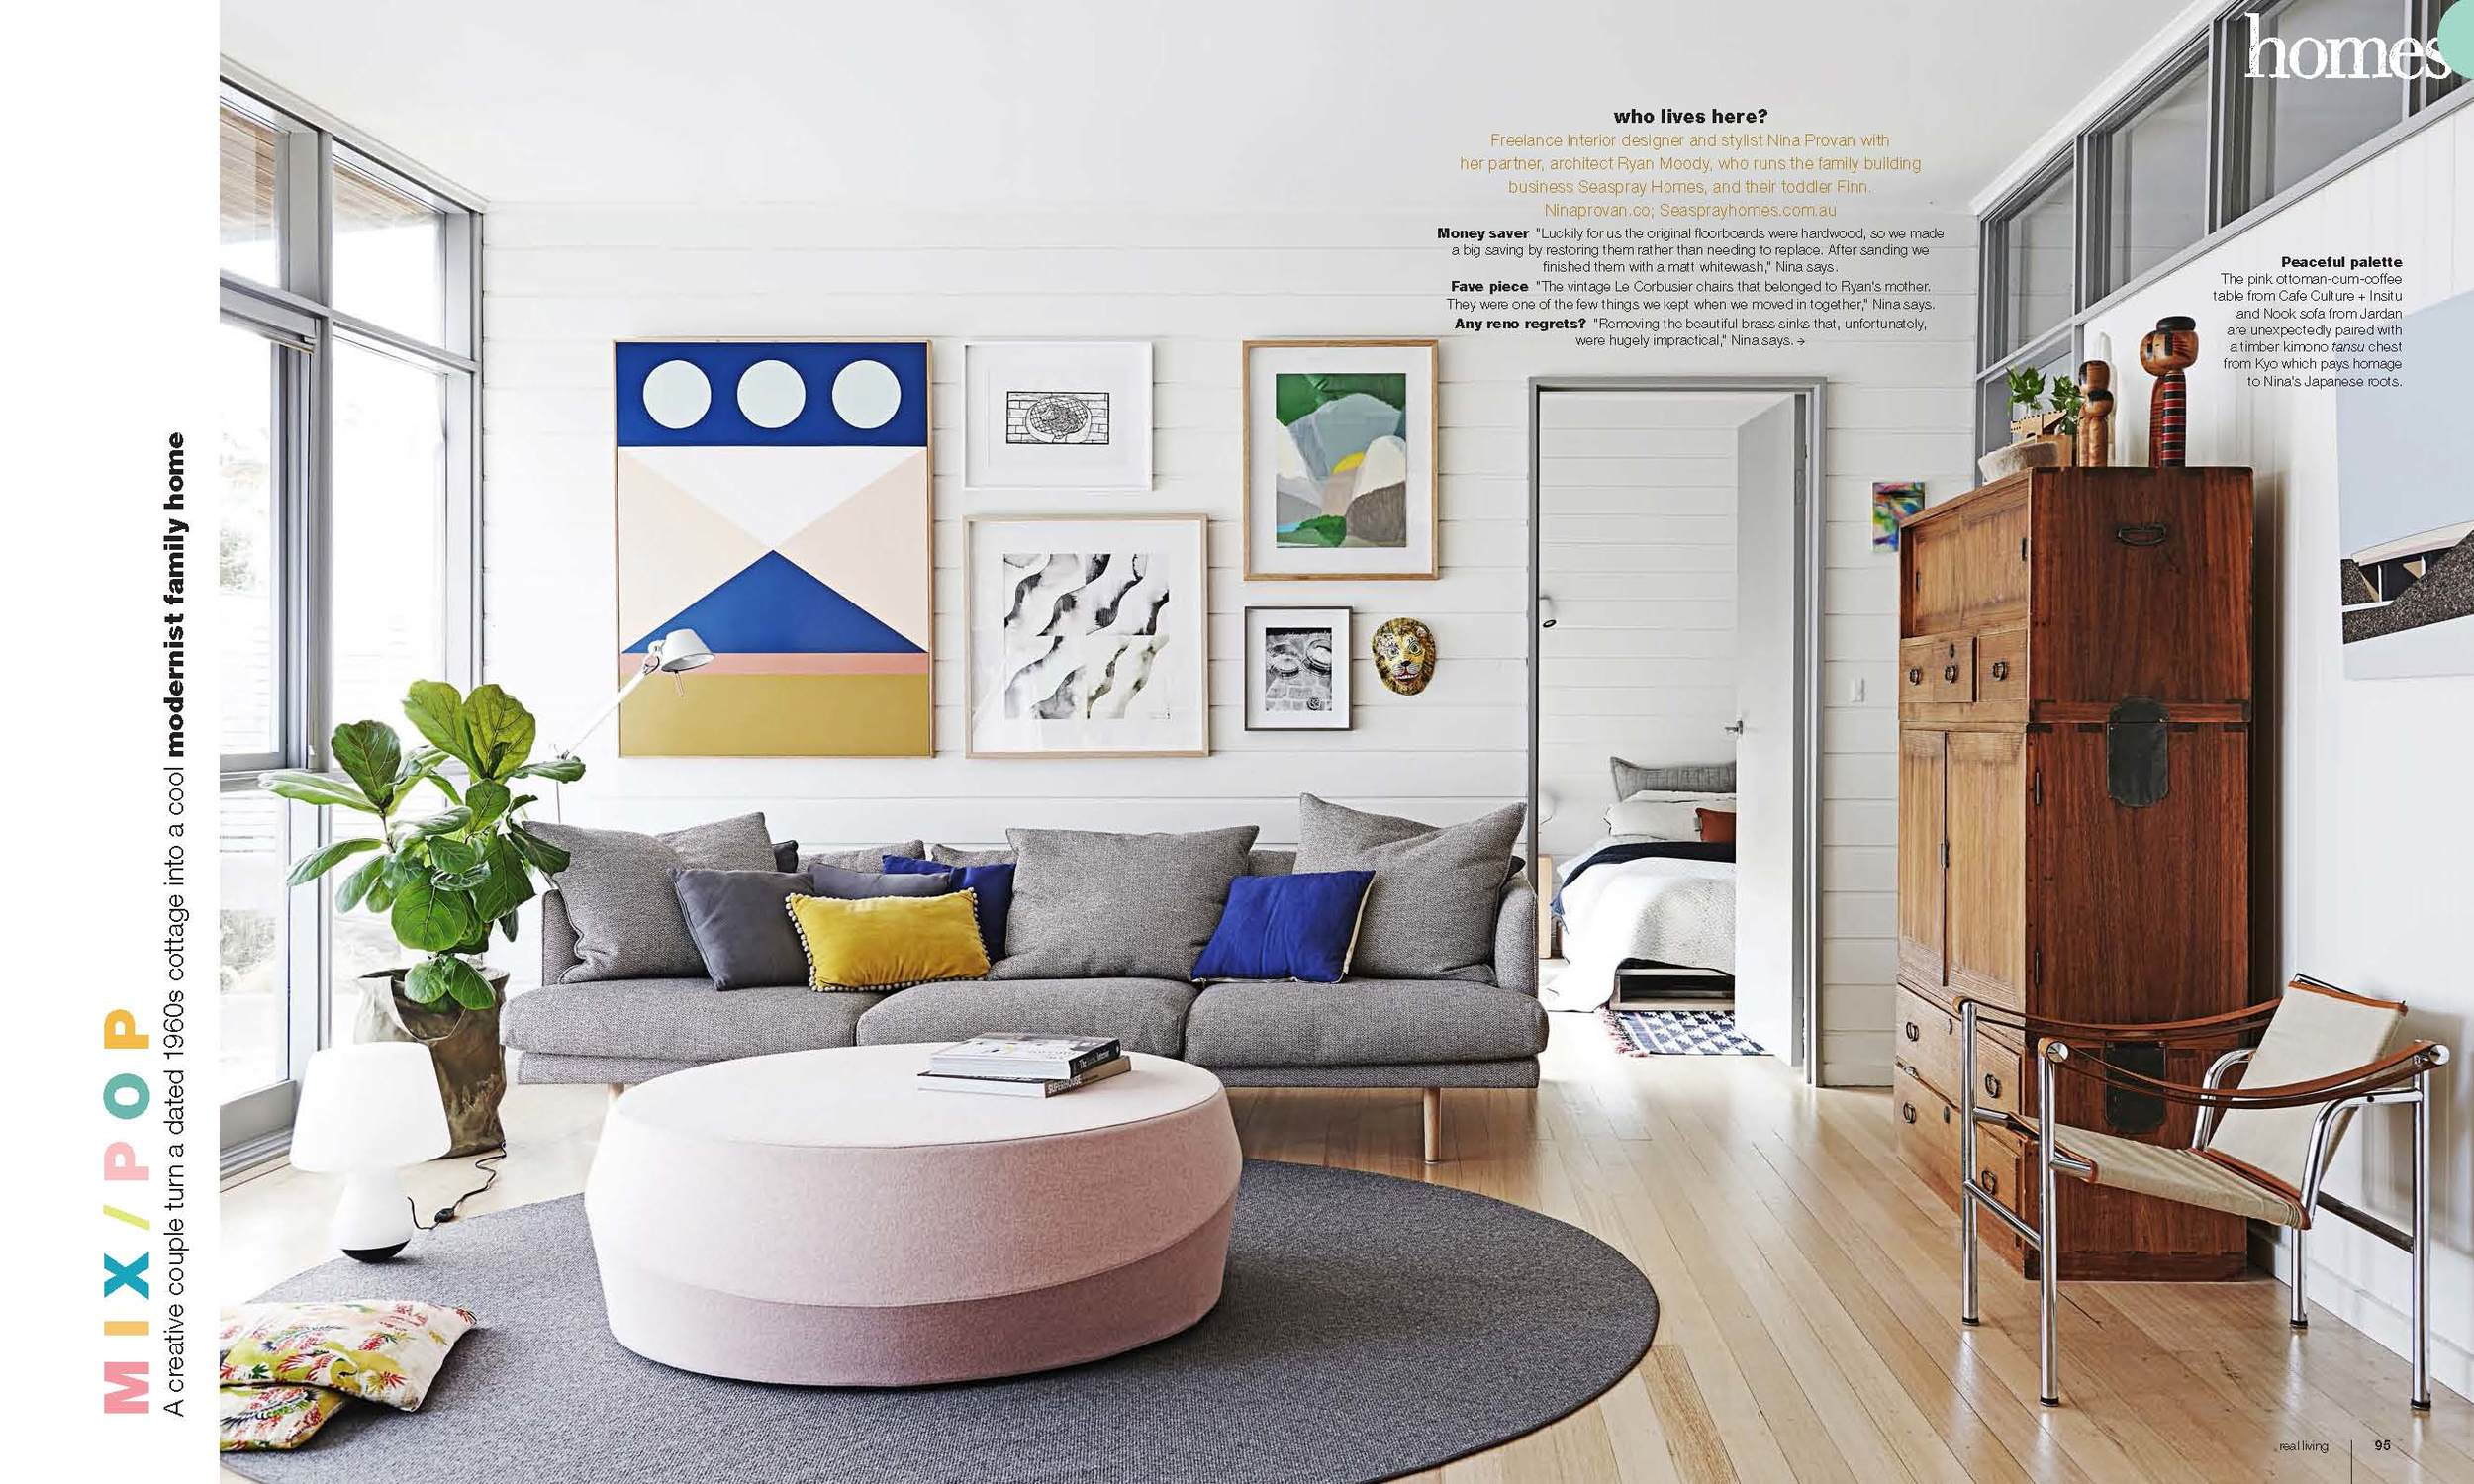 Real Living Homes Feature - Styling by Simone Haag & Nina Provan Photography Eve Wilson